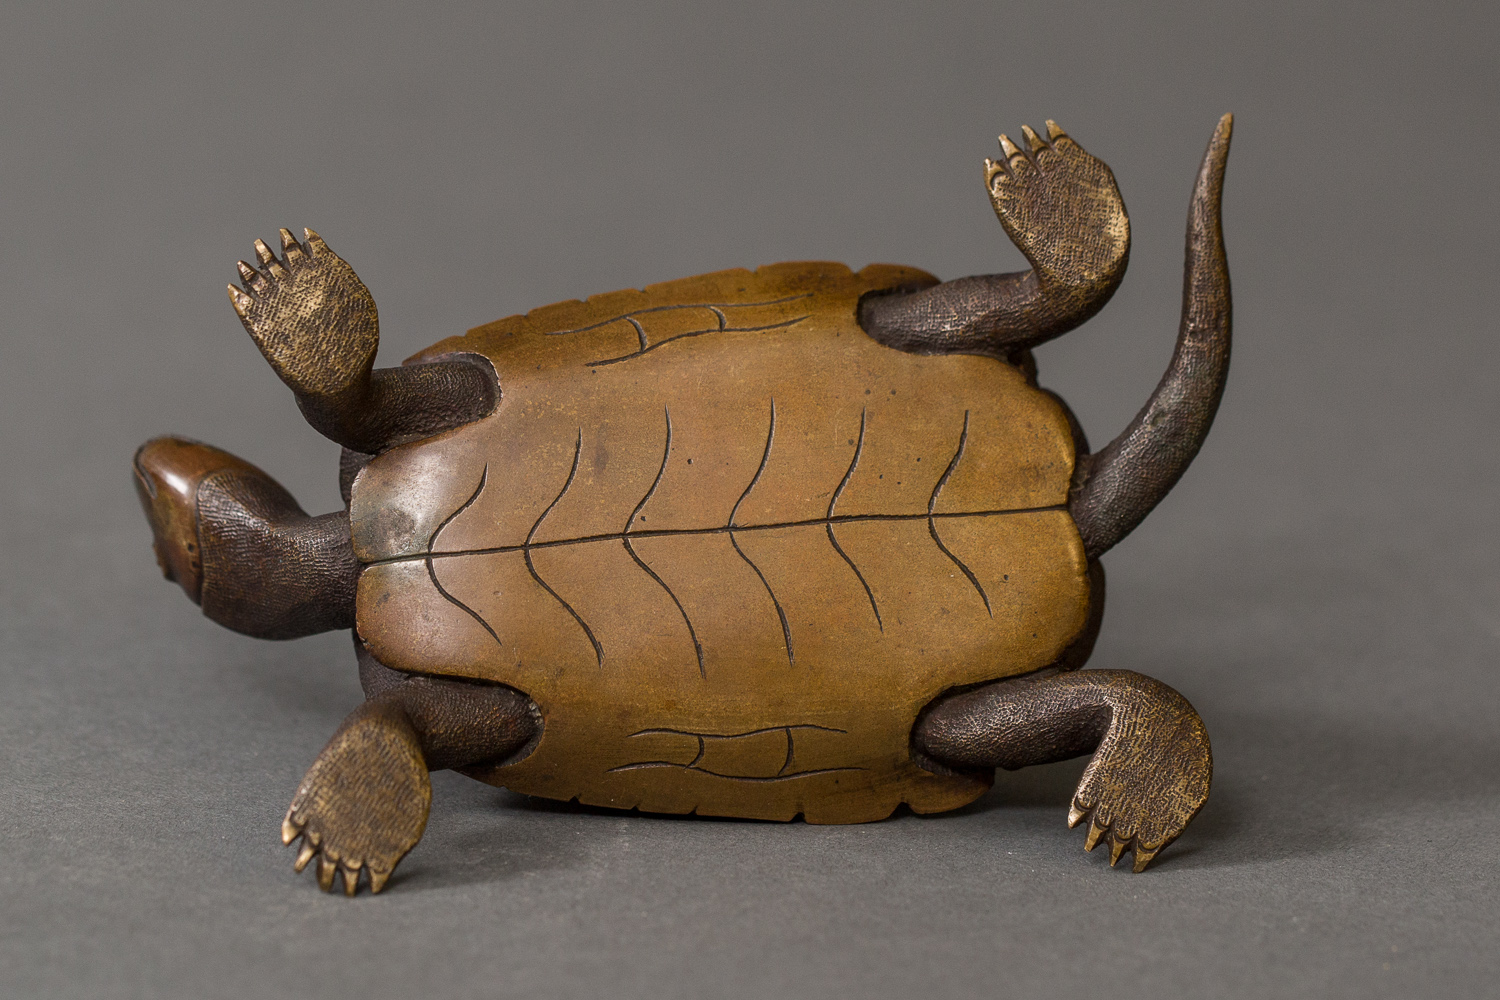 Japanese Antique Bronze Sculpture of Turtles